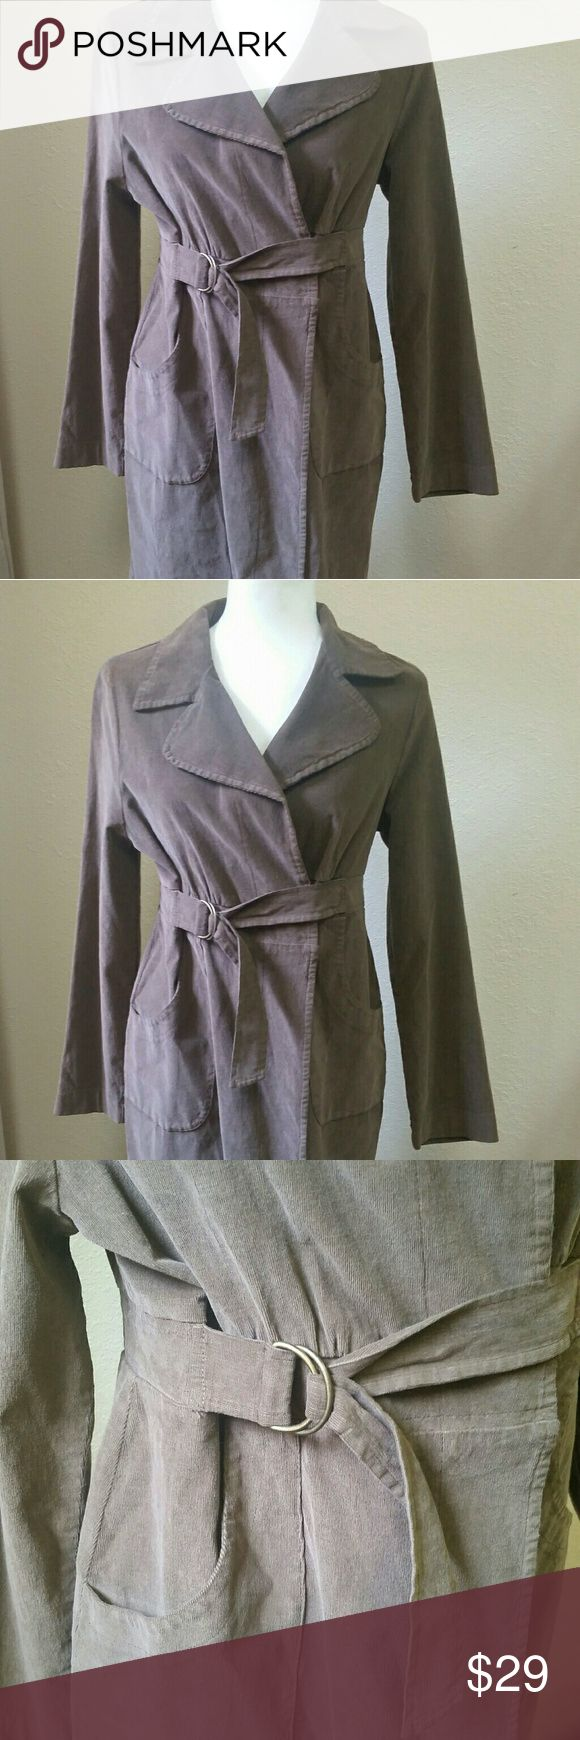 Japanese Weekend Maternity Jacket Size Medium NWT Above knee length jacket buy Japanese weekend with adjustable belt perfect for fall. Size medium fits size 8 dress size.  Micro corduroy.  Color:  Rootbeer Japanese Weekend Jackets & Coats Trench Coats